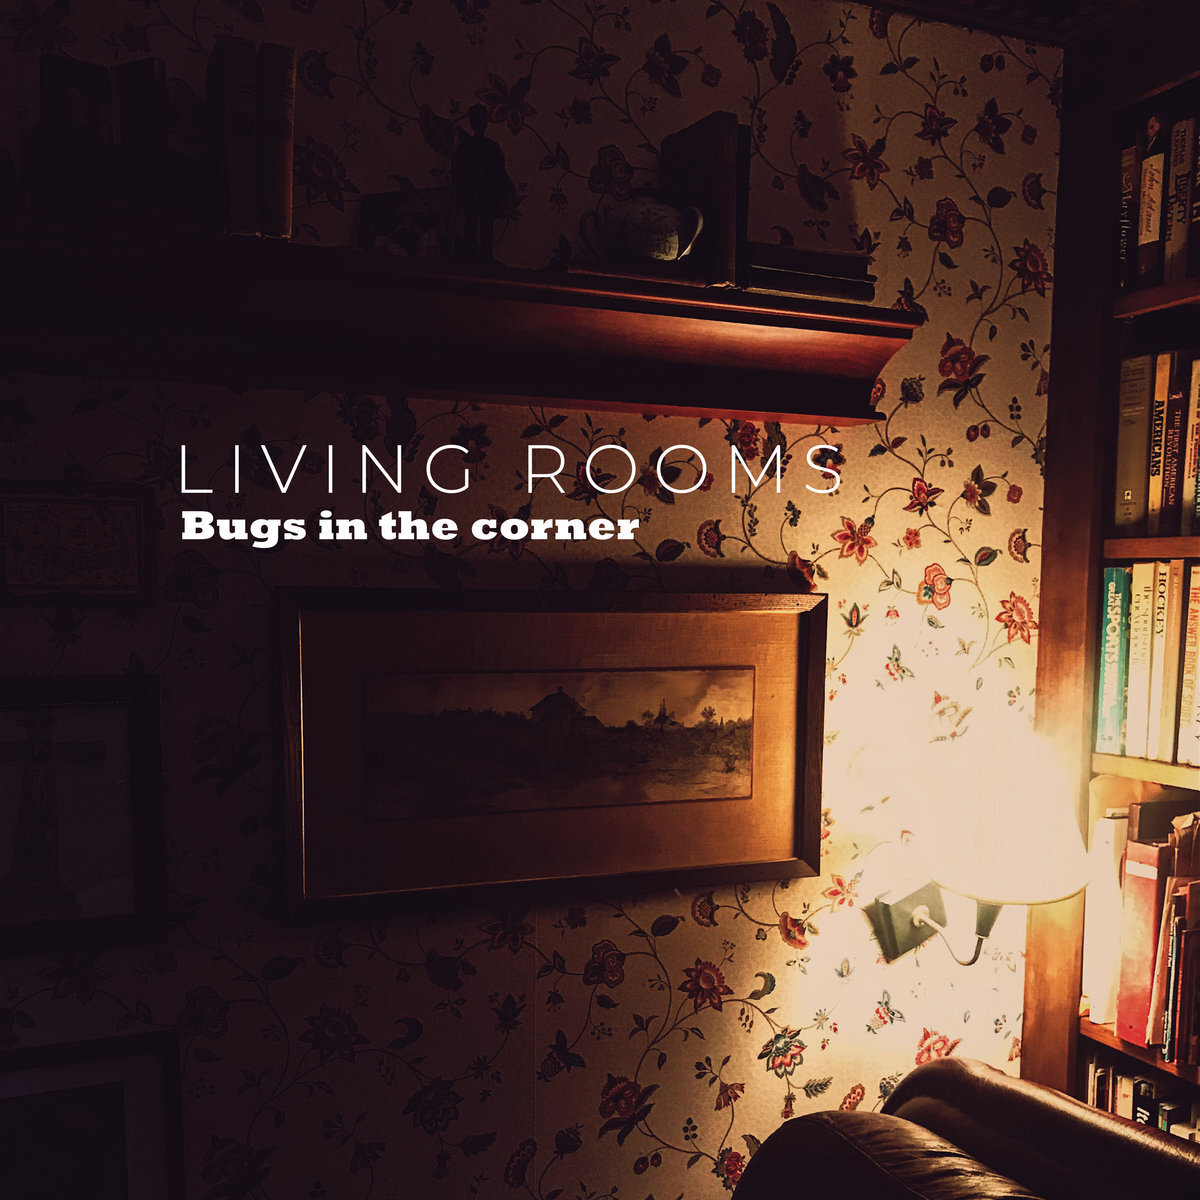 Bugs in the Corner -  Living Rooms  (produced, engineered, mixed)  guitars, bass, drums, lead & backing vocals